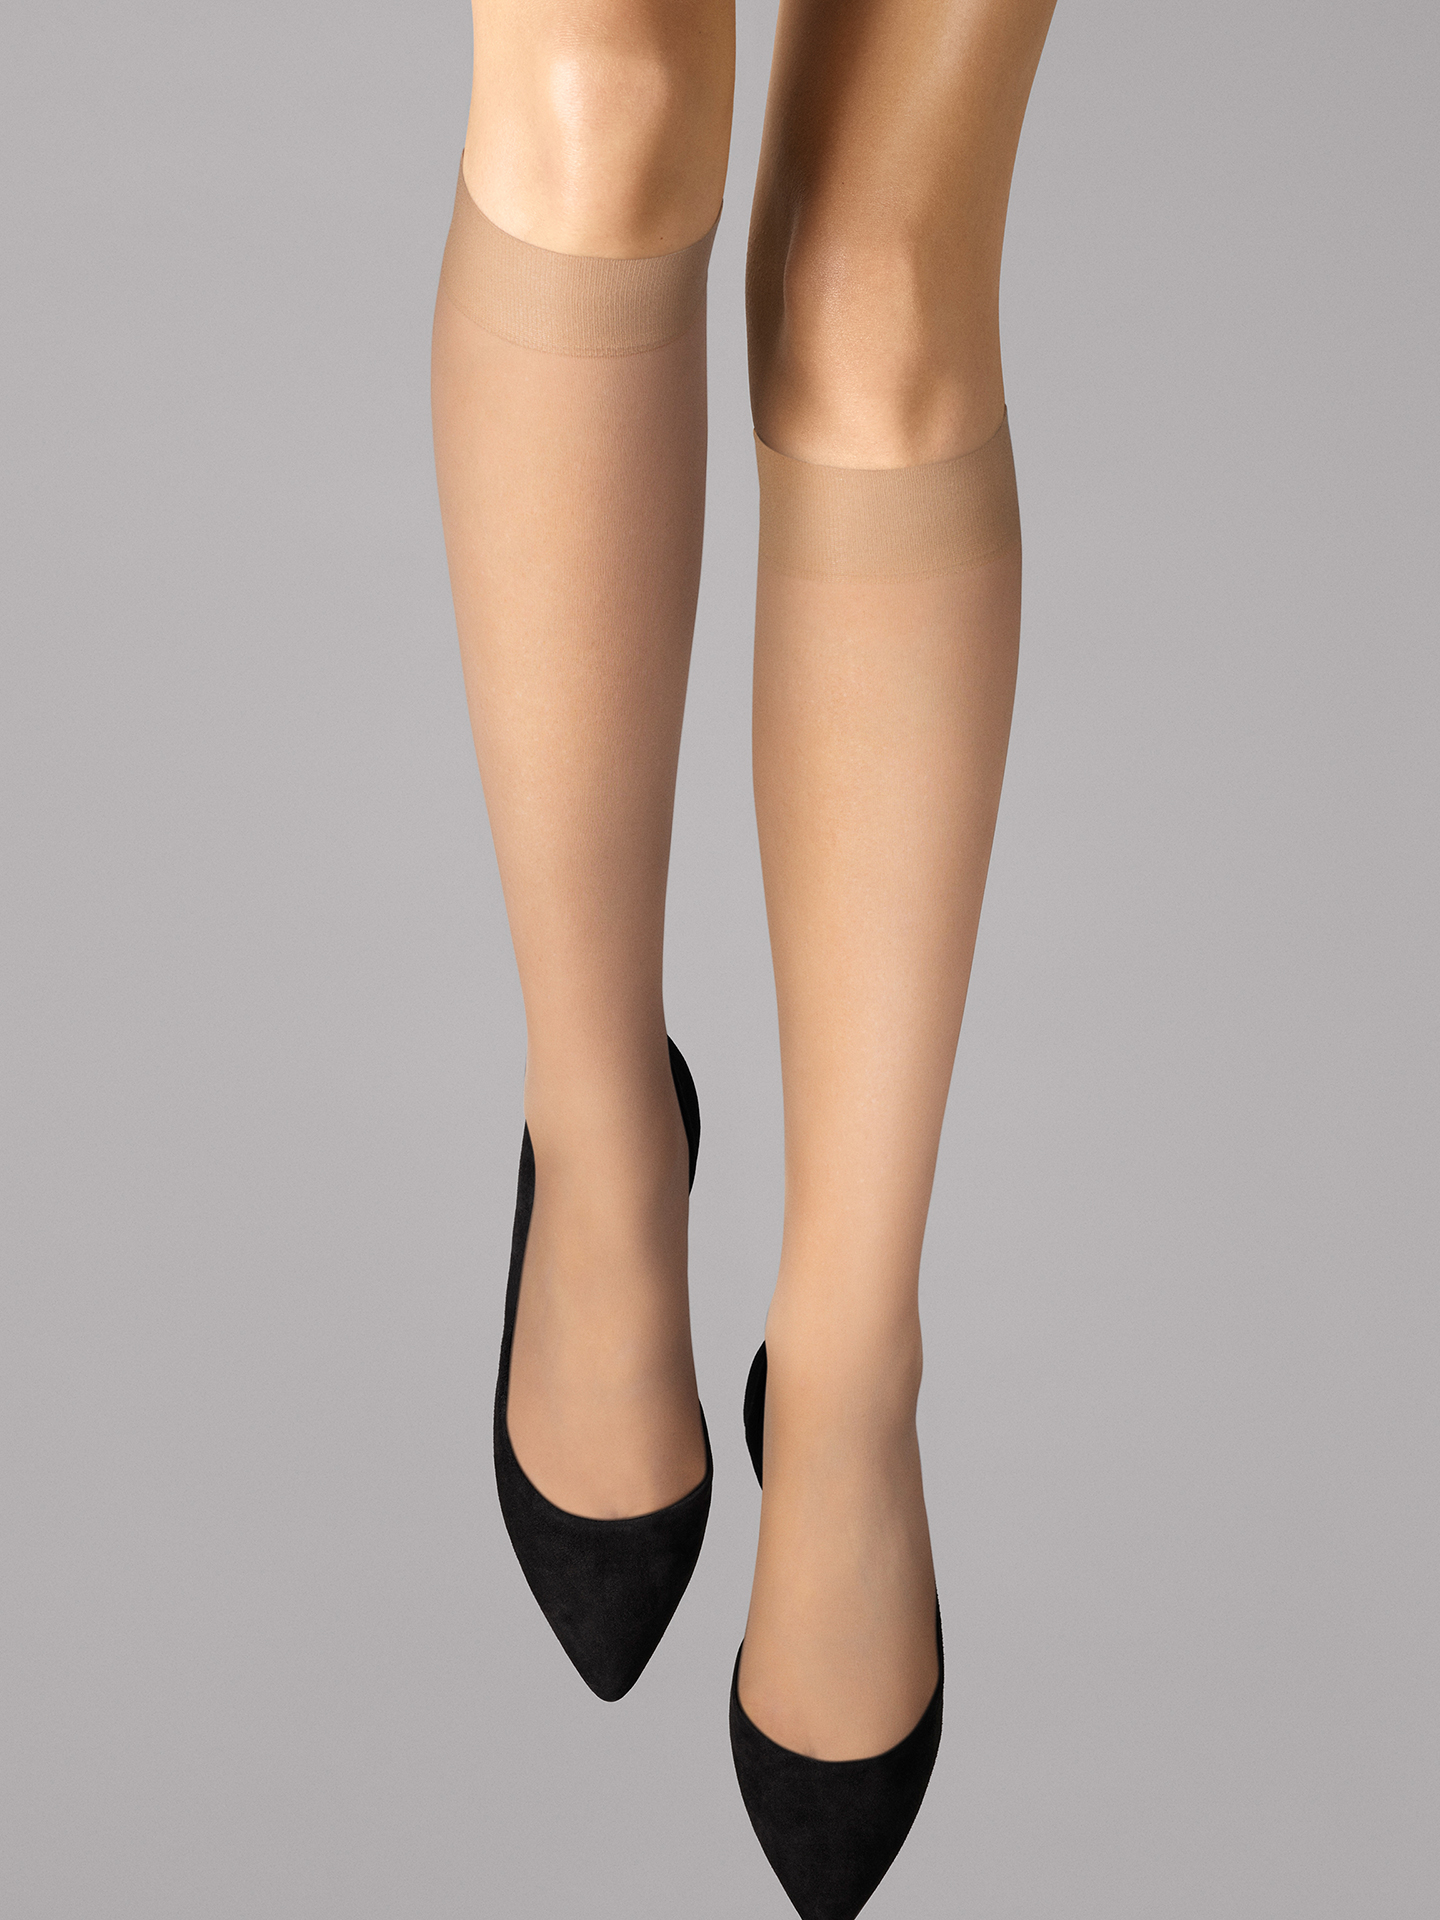 Wolford Apparel & Accessories > Clothing > Gambaletti Individual 10 Knee-Highs - 4738 - S